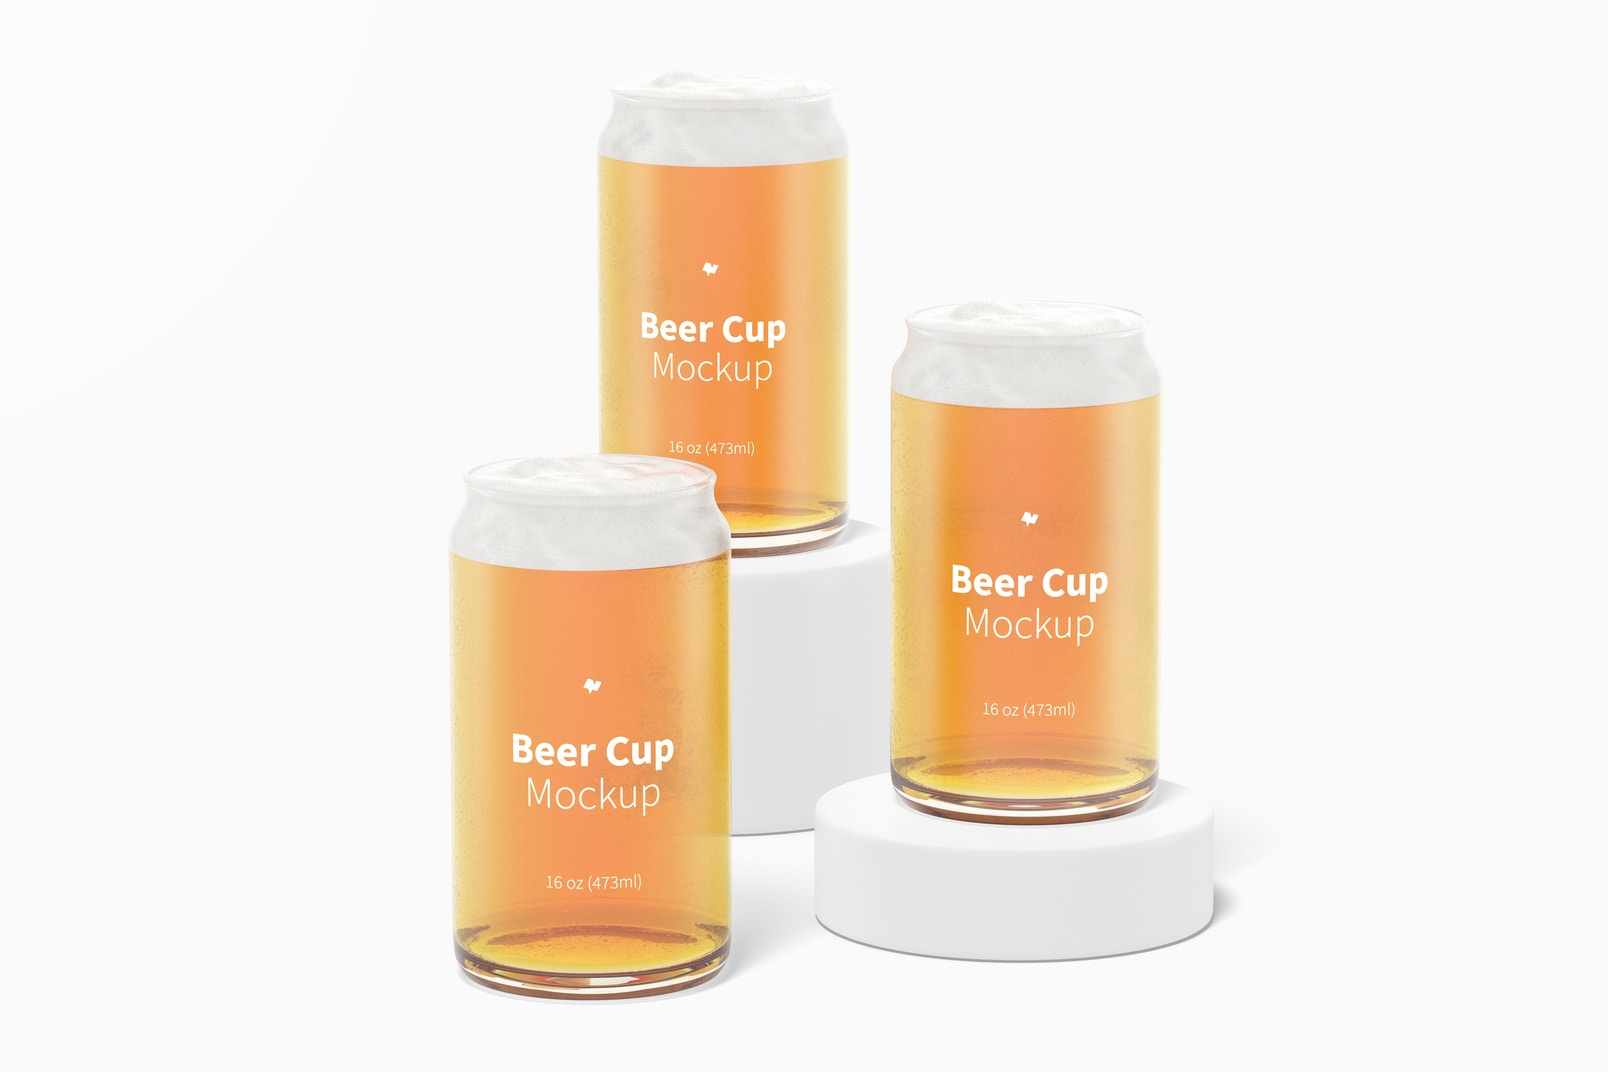 16 oz Glass Beer Cups Mockup, Front View